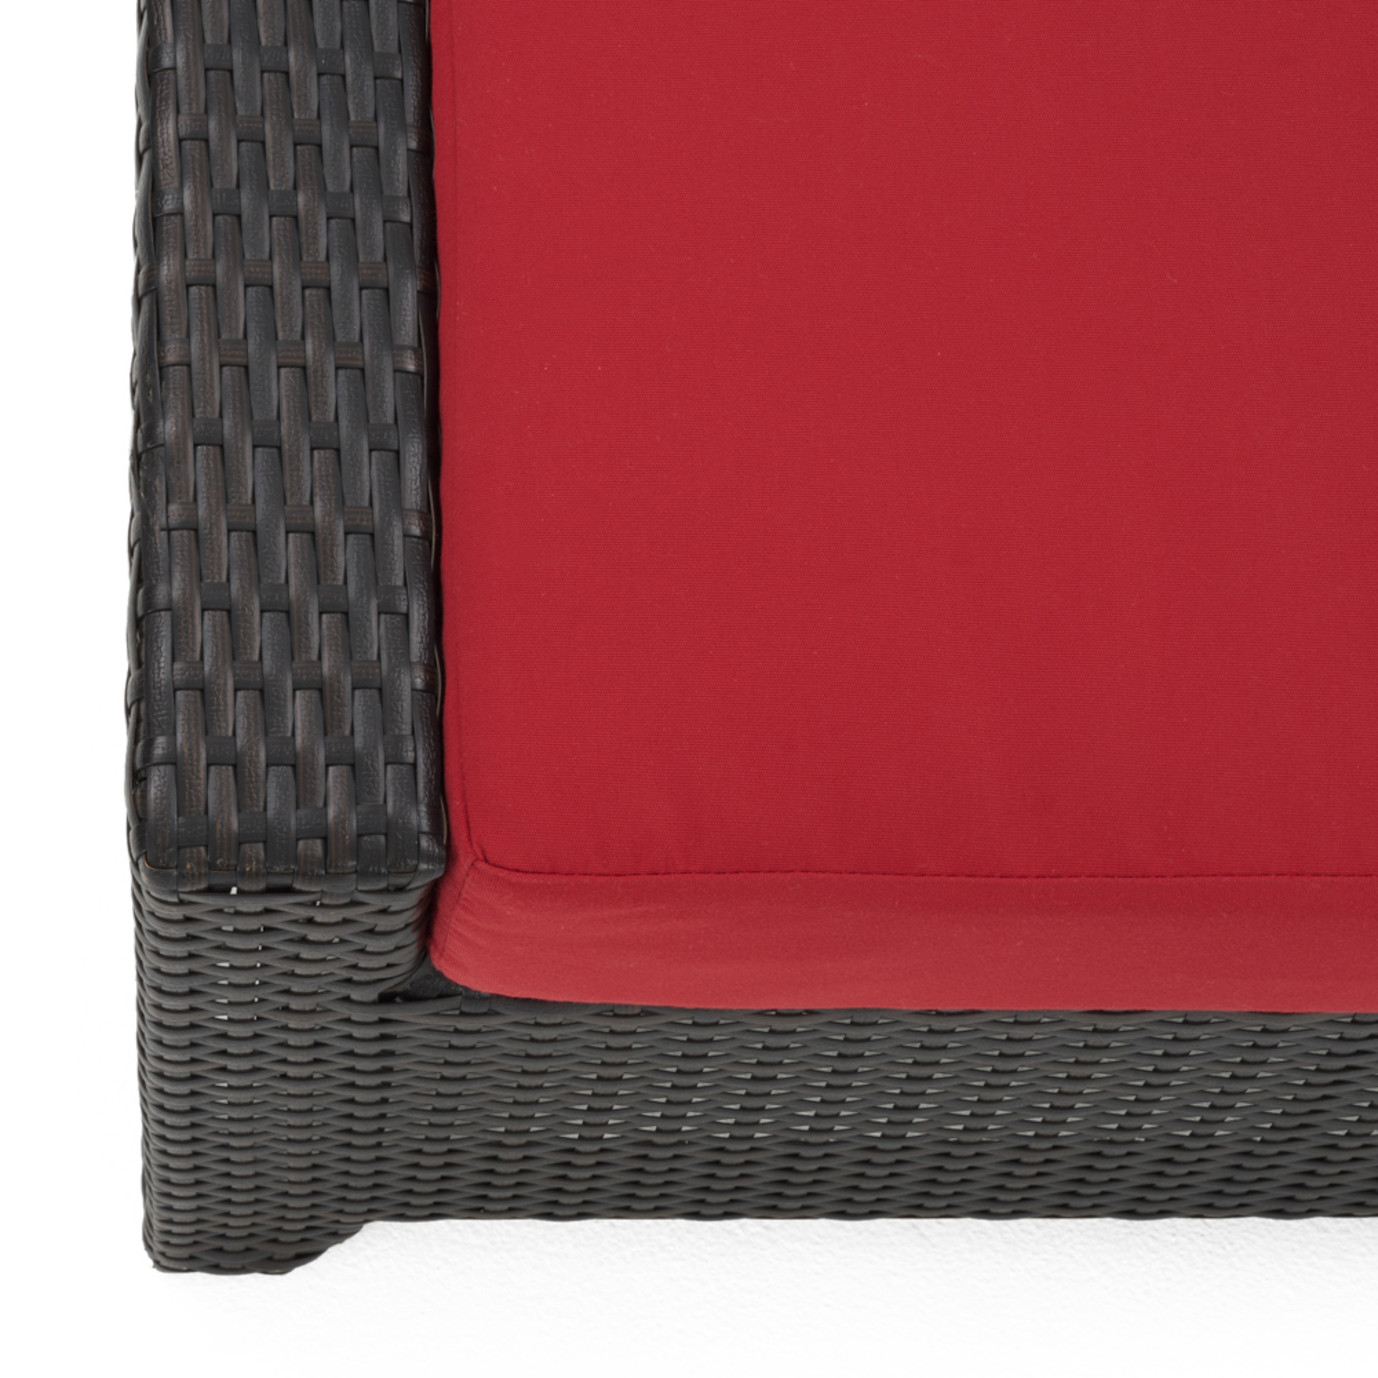 Deco™ 8pc Sofa and Club Chair Set - Sunset Red